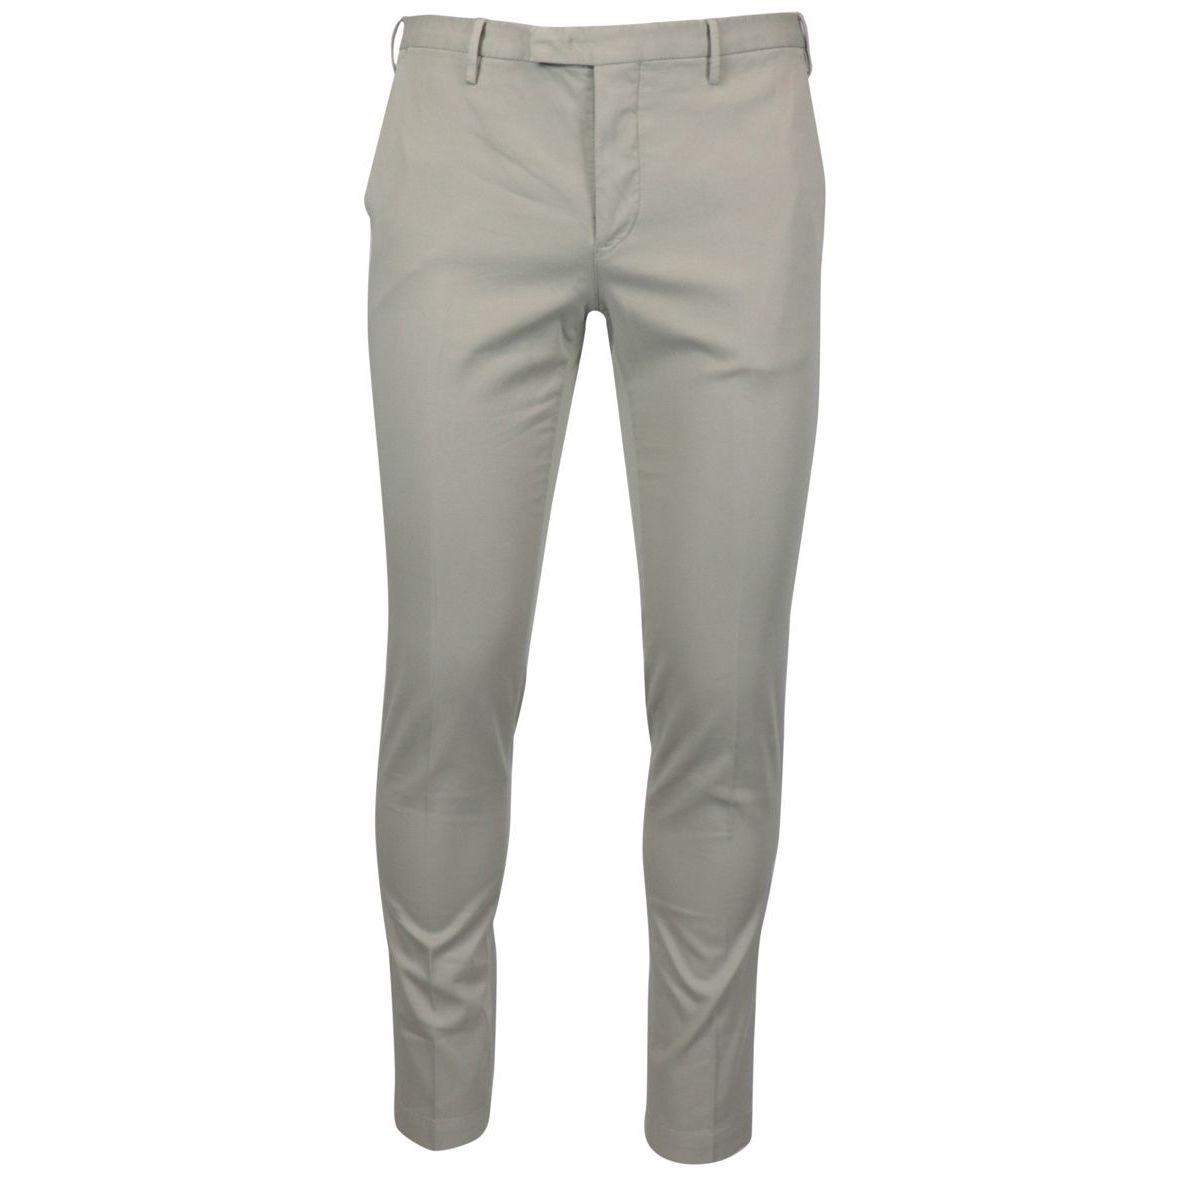 Cotton skinny fit trousers Beige PT TORINO